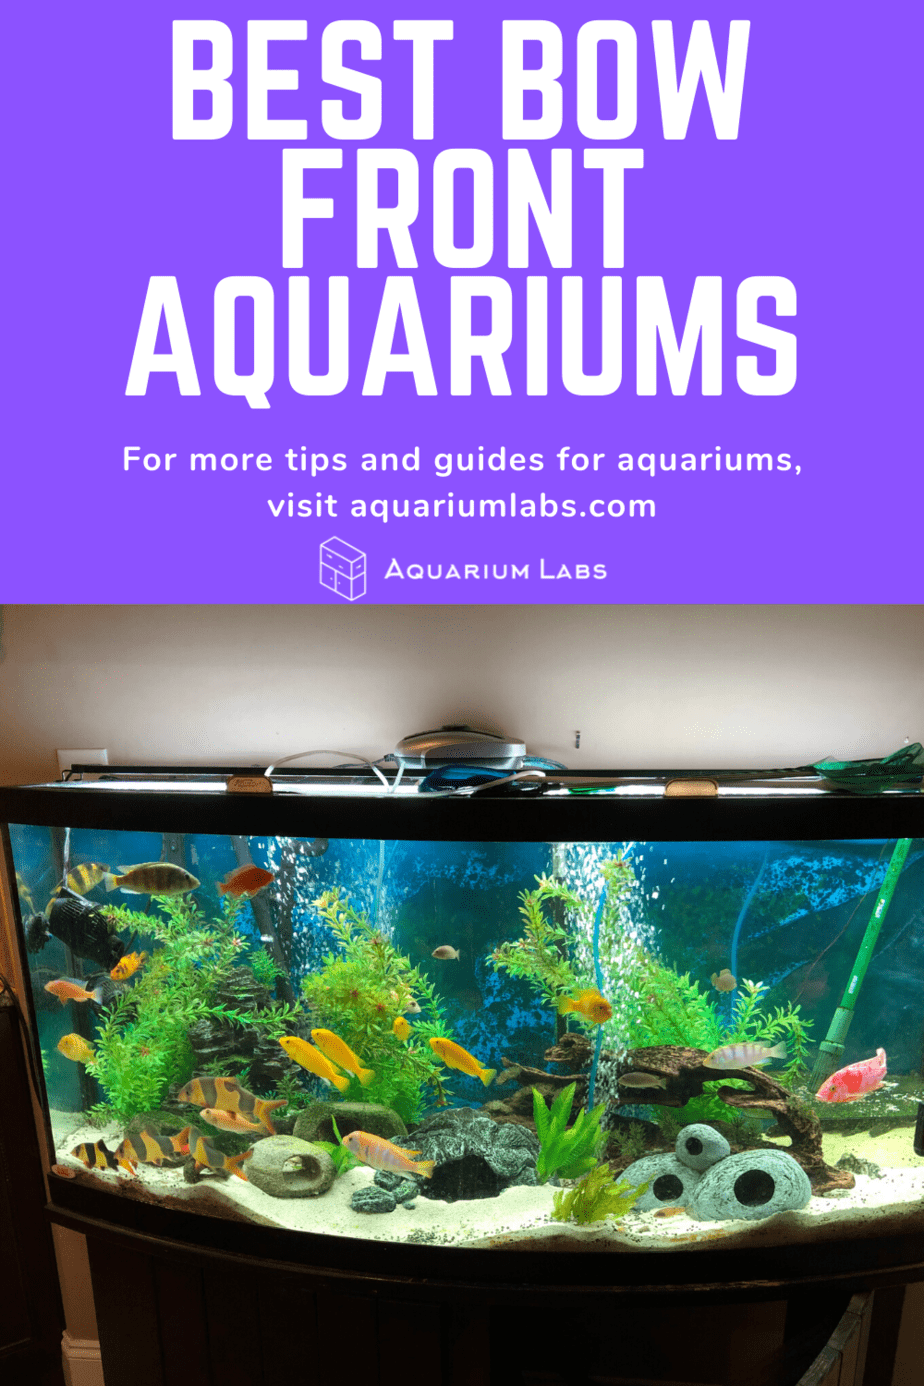 best bow front aquariums pin 1